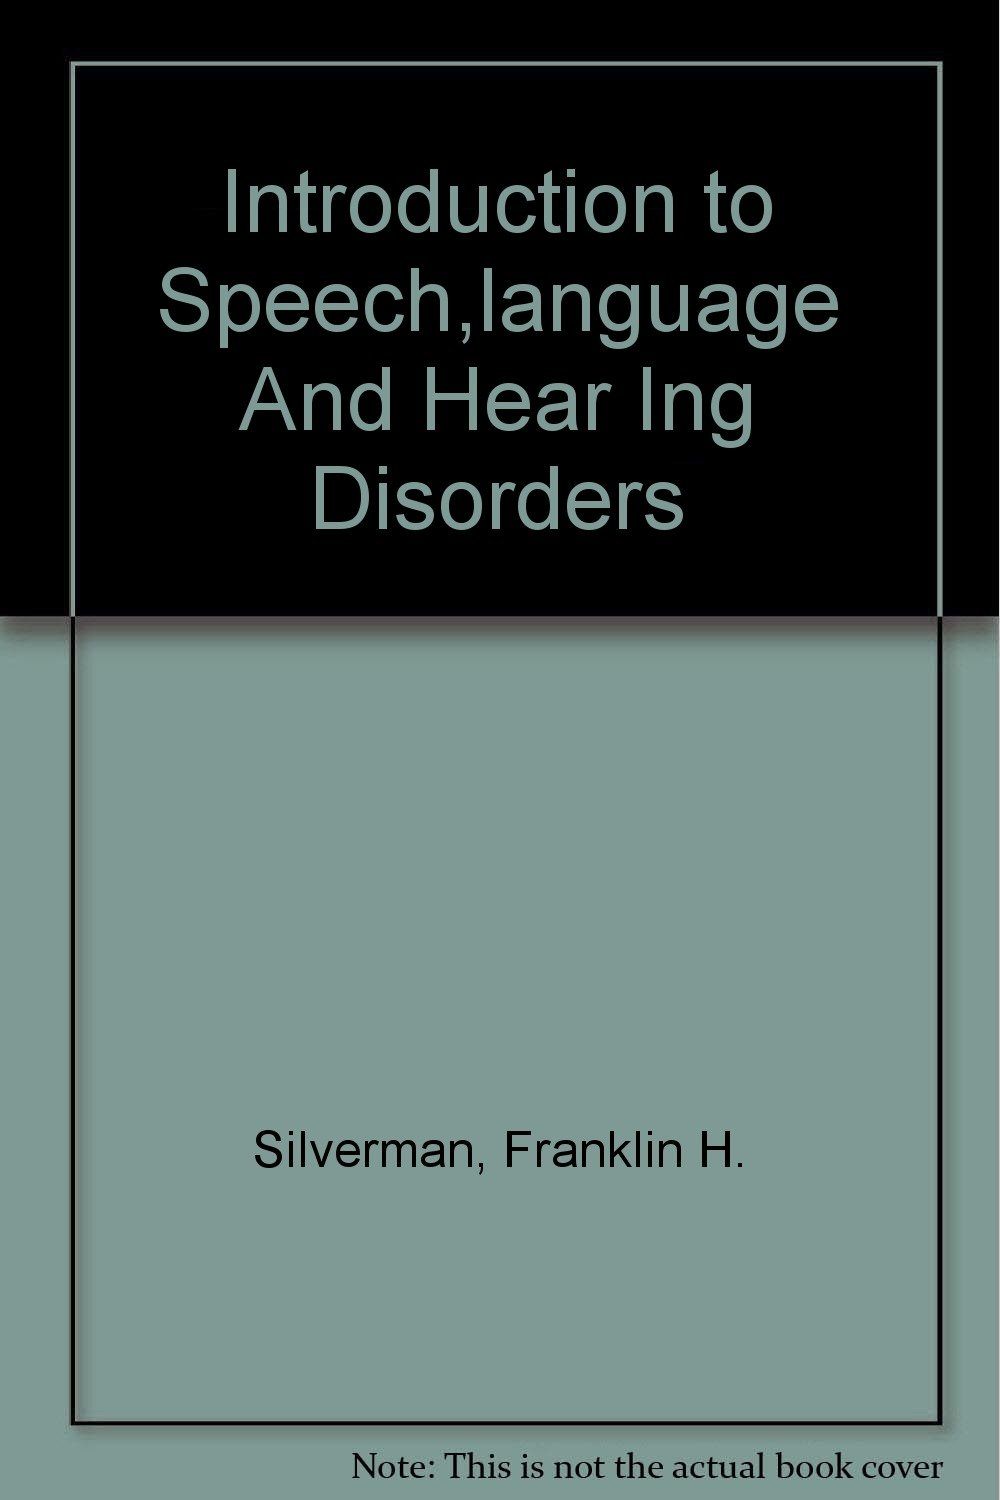 Introduction to Speech,language And Hear Ing Disorders PDF